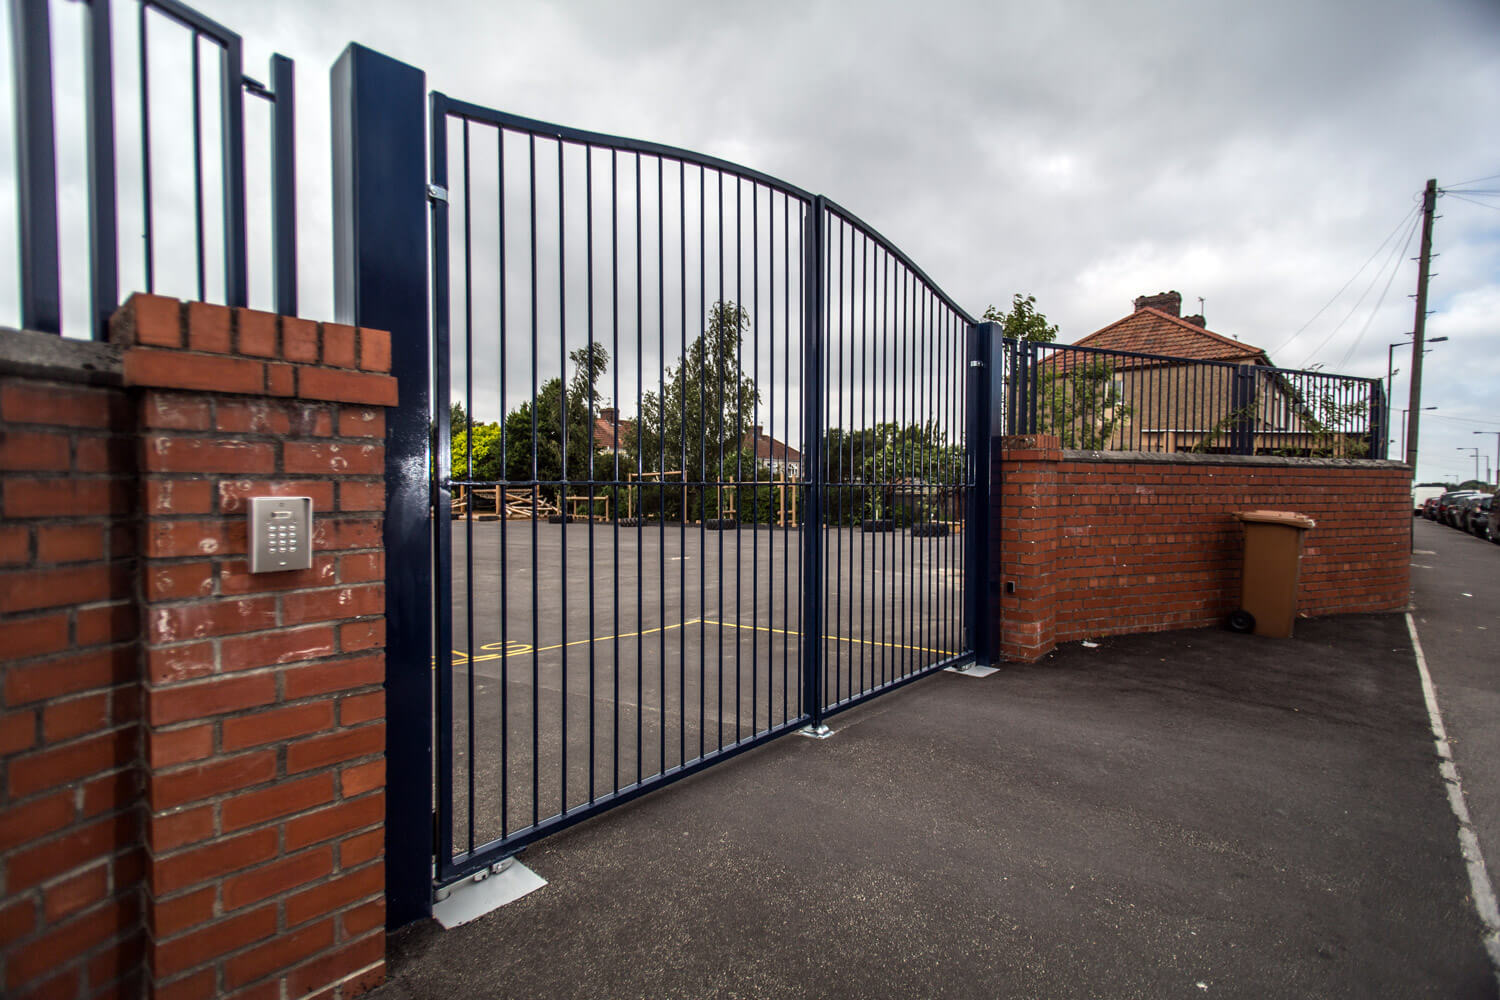 steel commercial school education facility fencing automated gates palisade south west